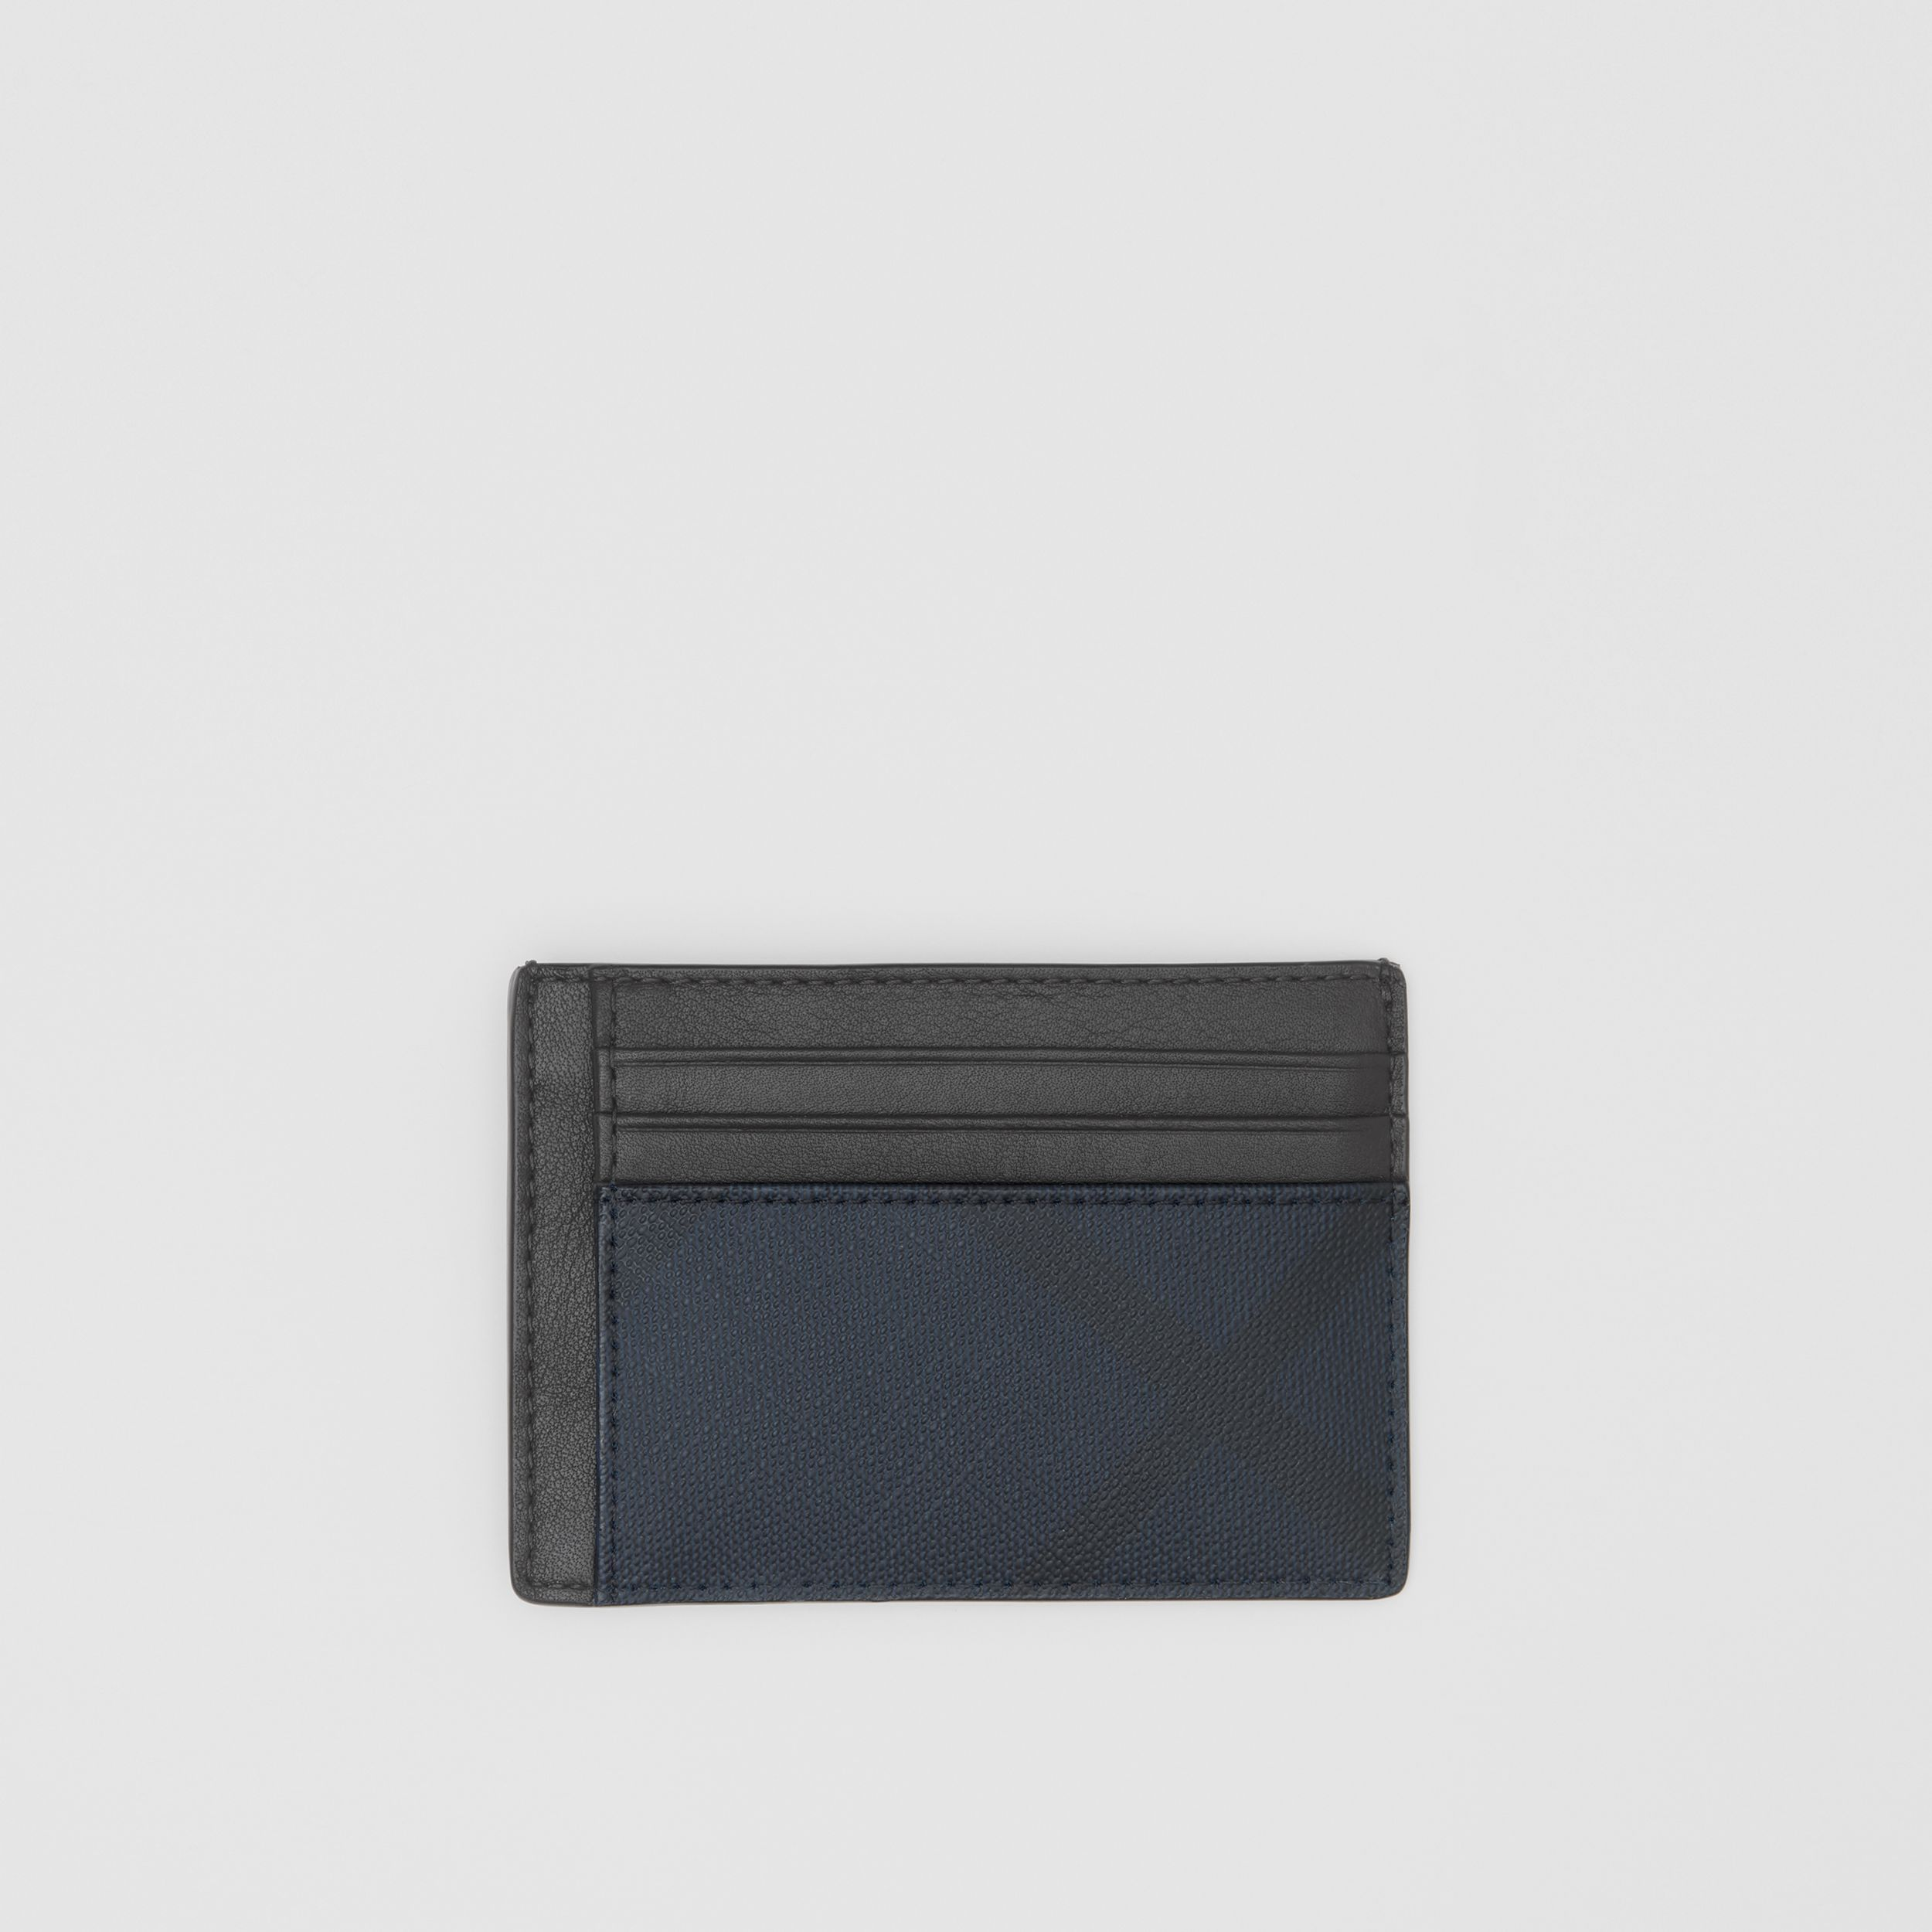 London Check and Leather Money Clip Card Case in Navy - Men | Burberry - 1